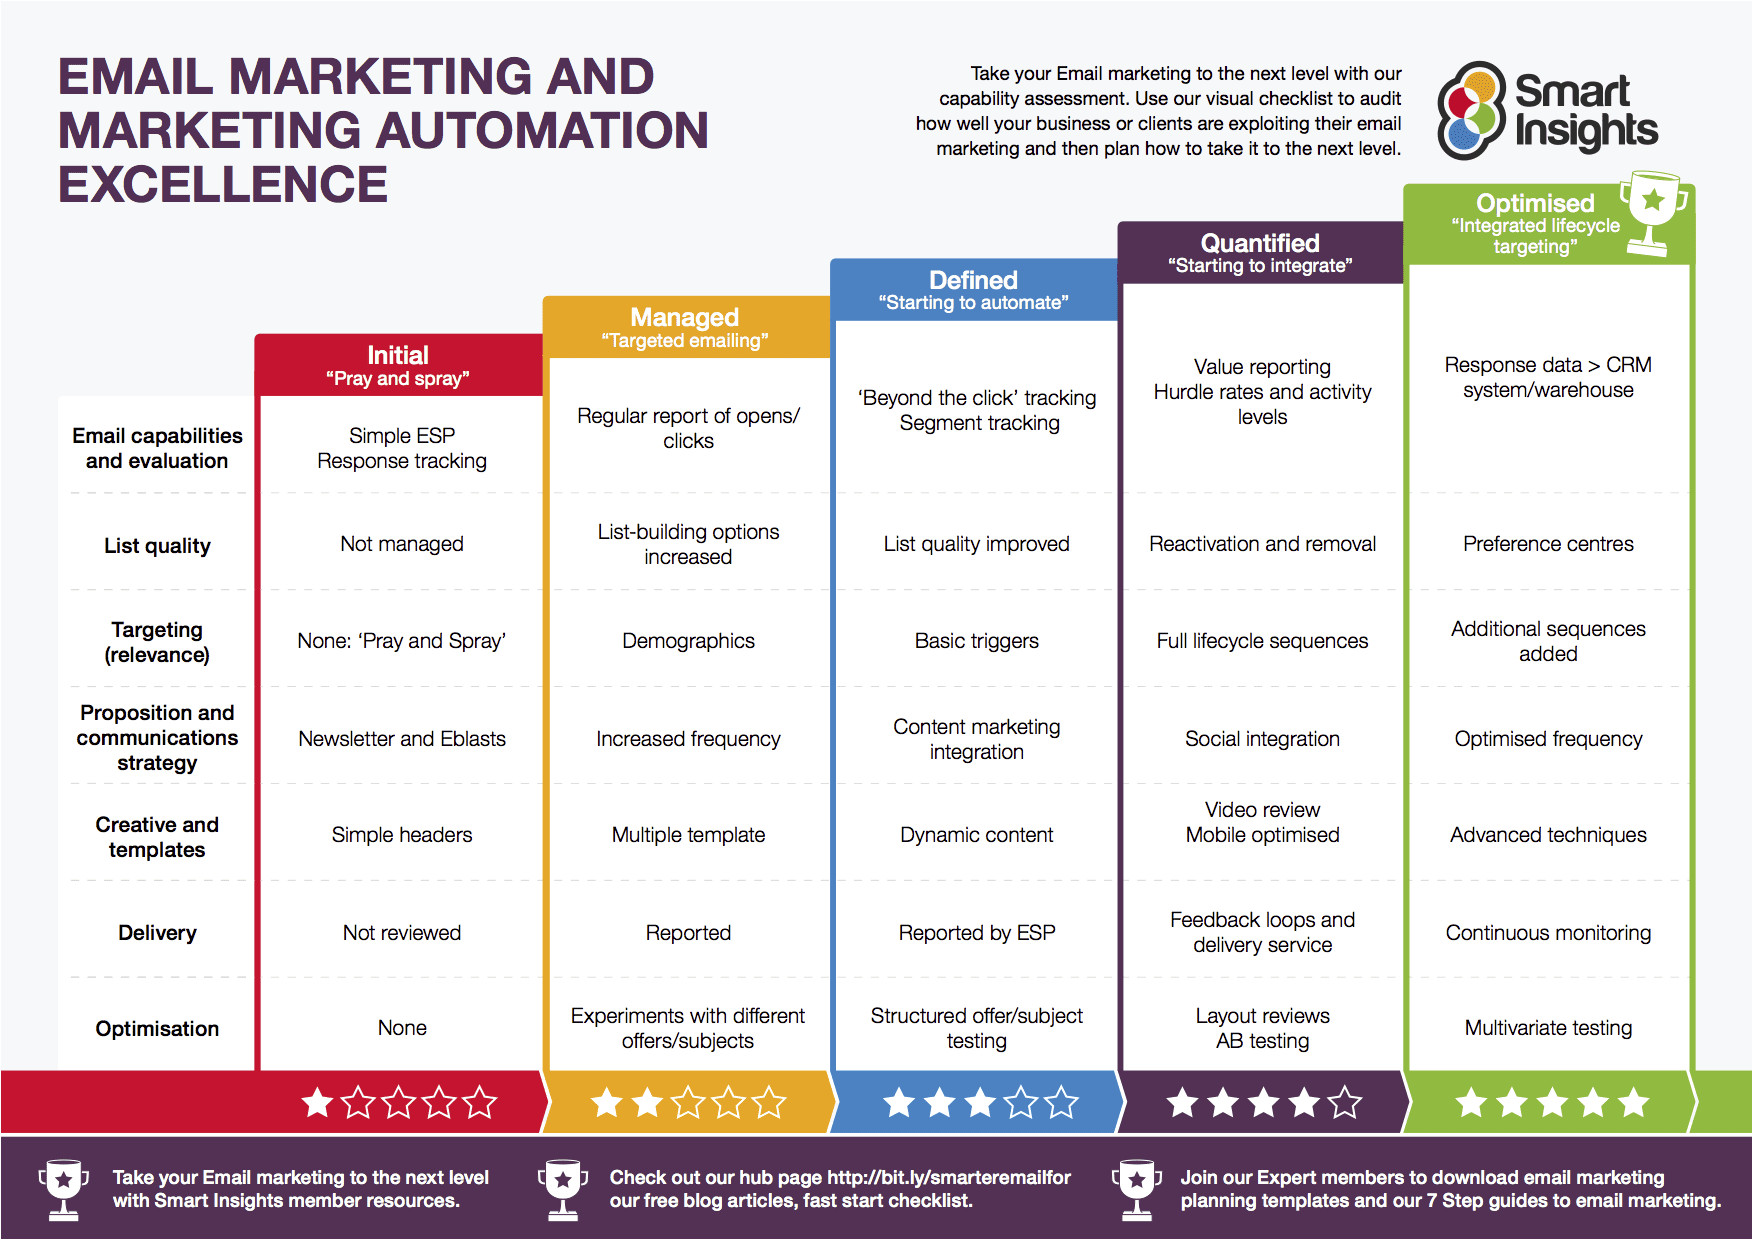 email marketing excellence templatev2 0